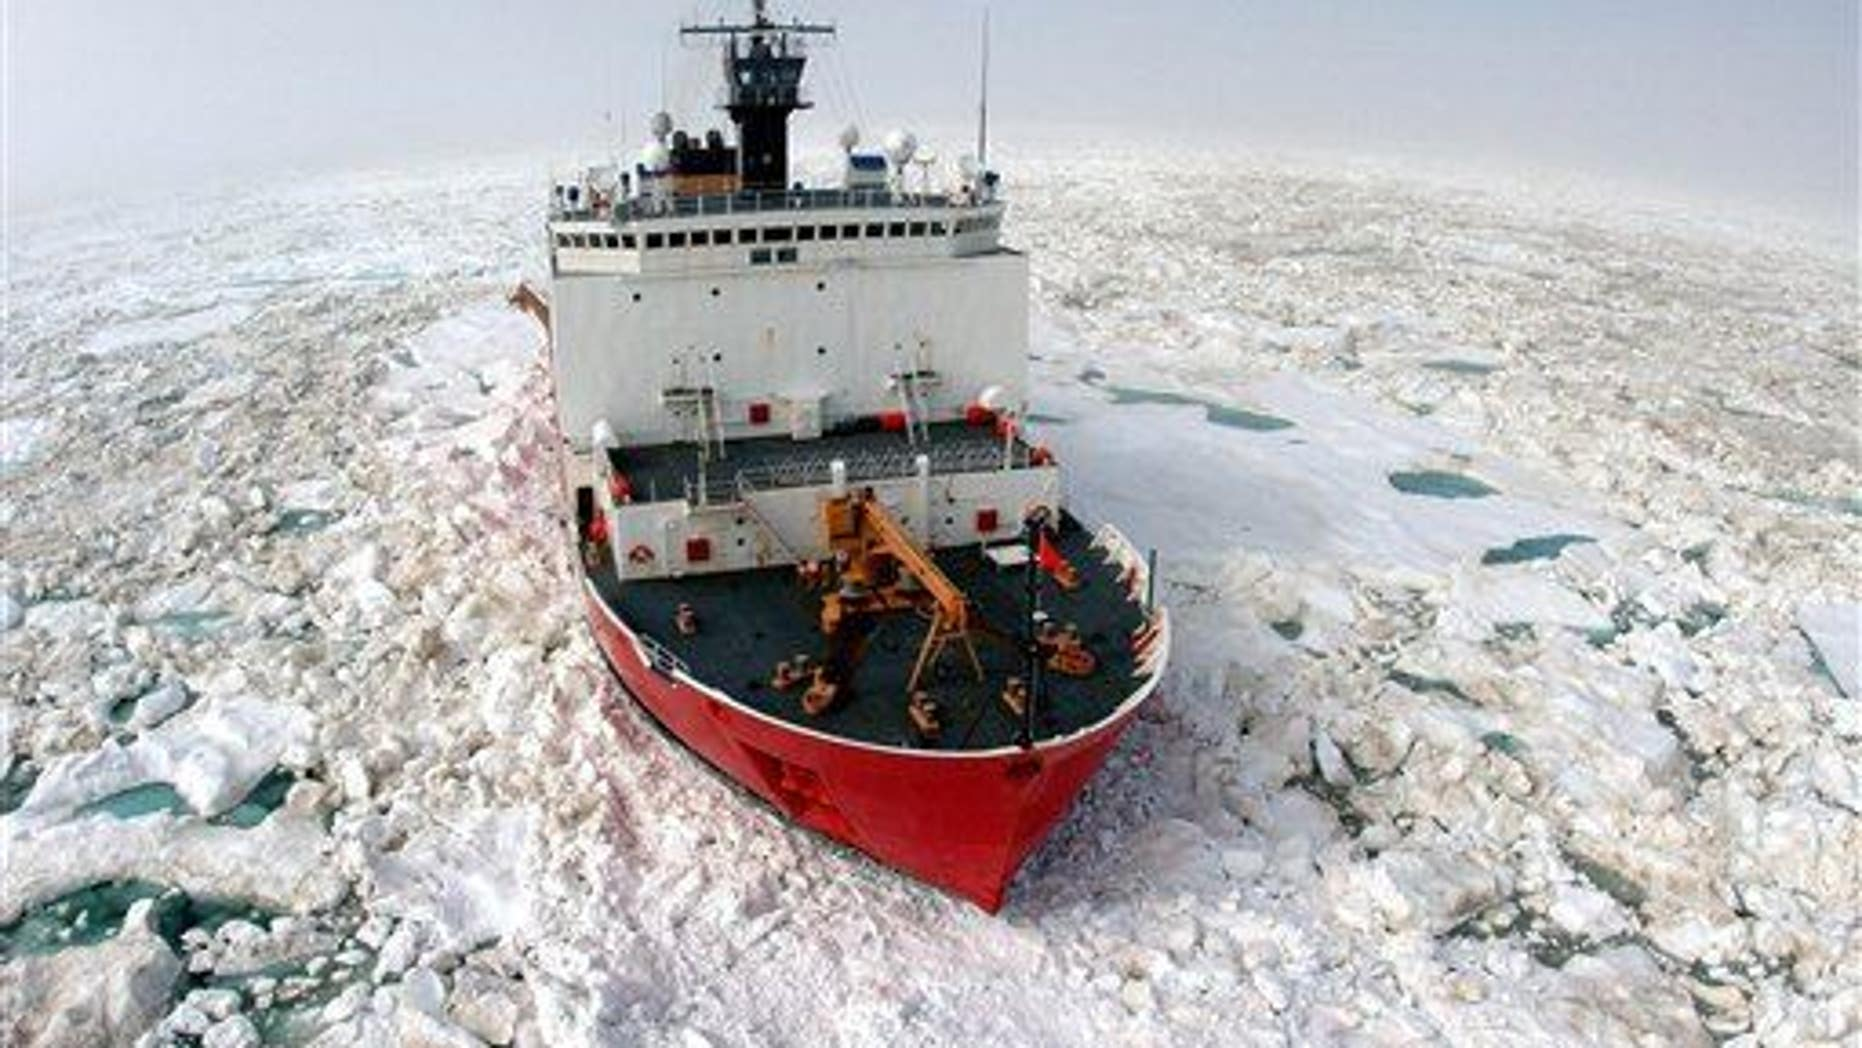 The Coast Guard Cutter Healy (not the ship set to go adrift) breaks ice to support scientific research in the Arctic Ocean near Barrow, Alaska, on July 22, 2006.